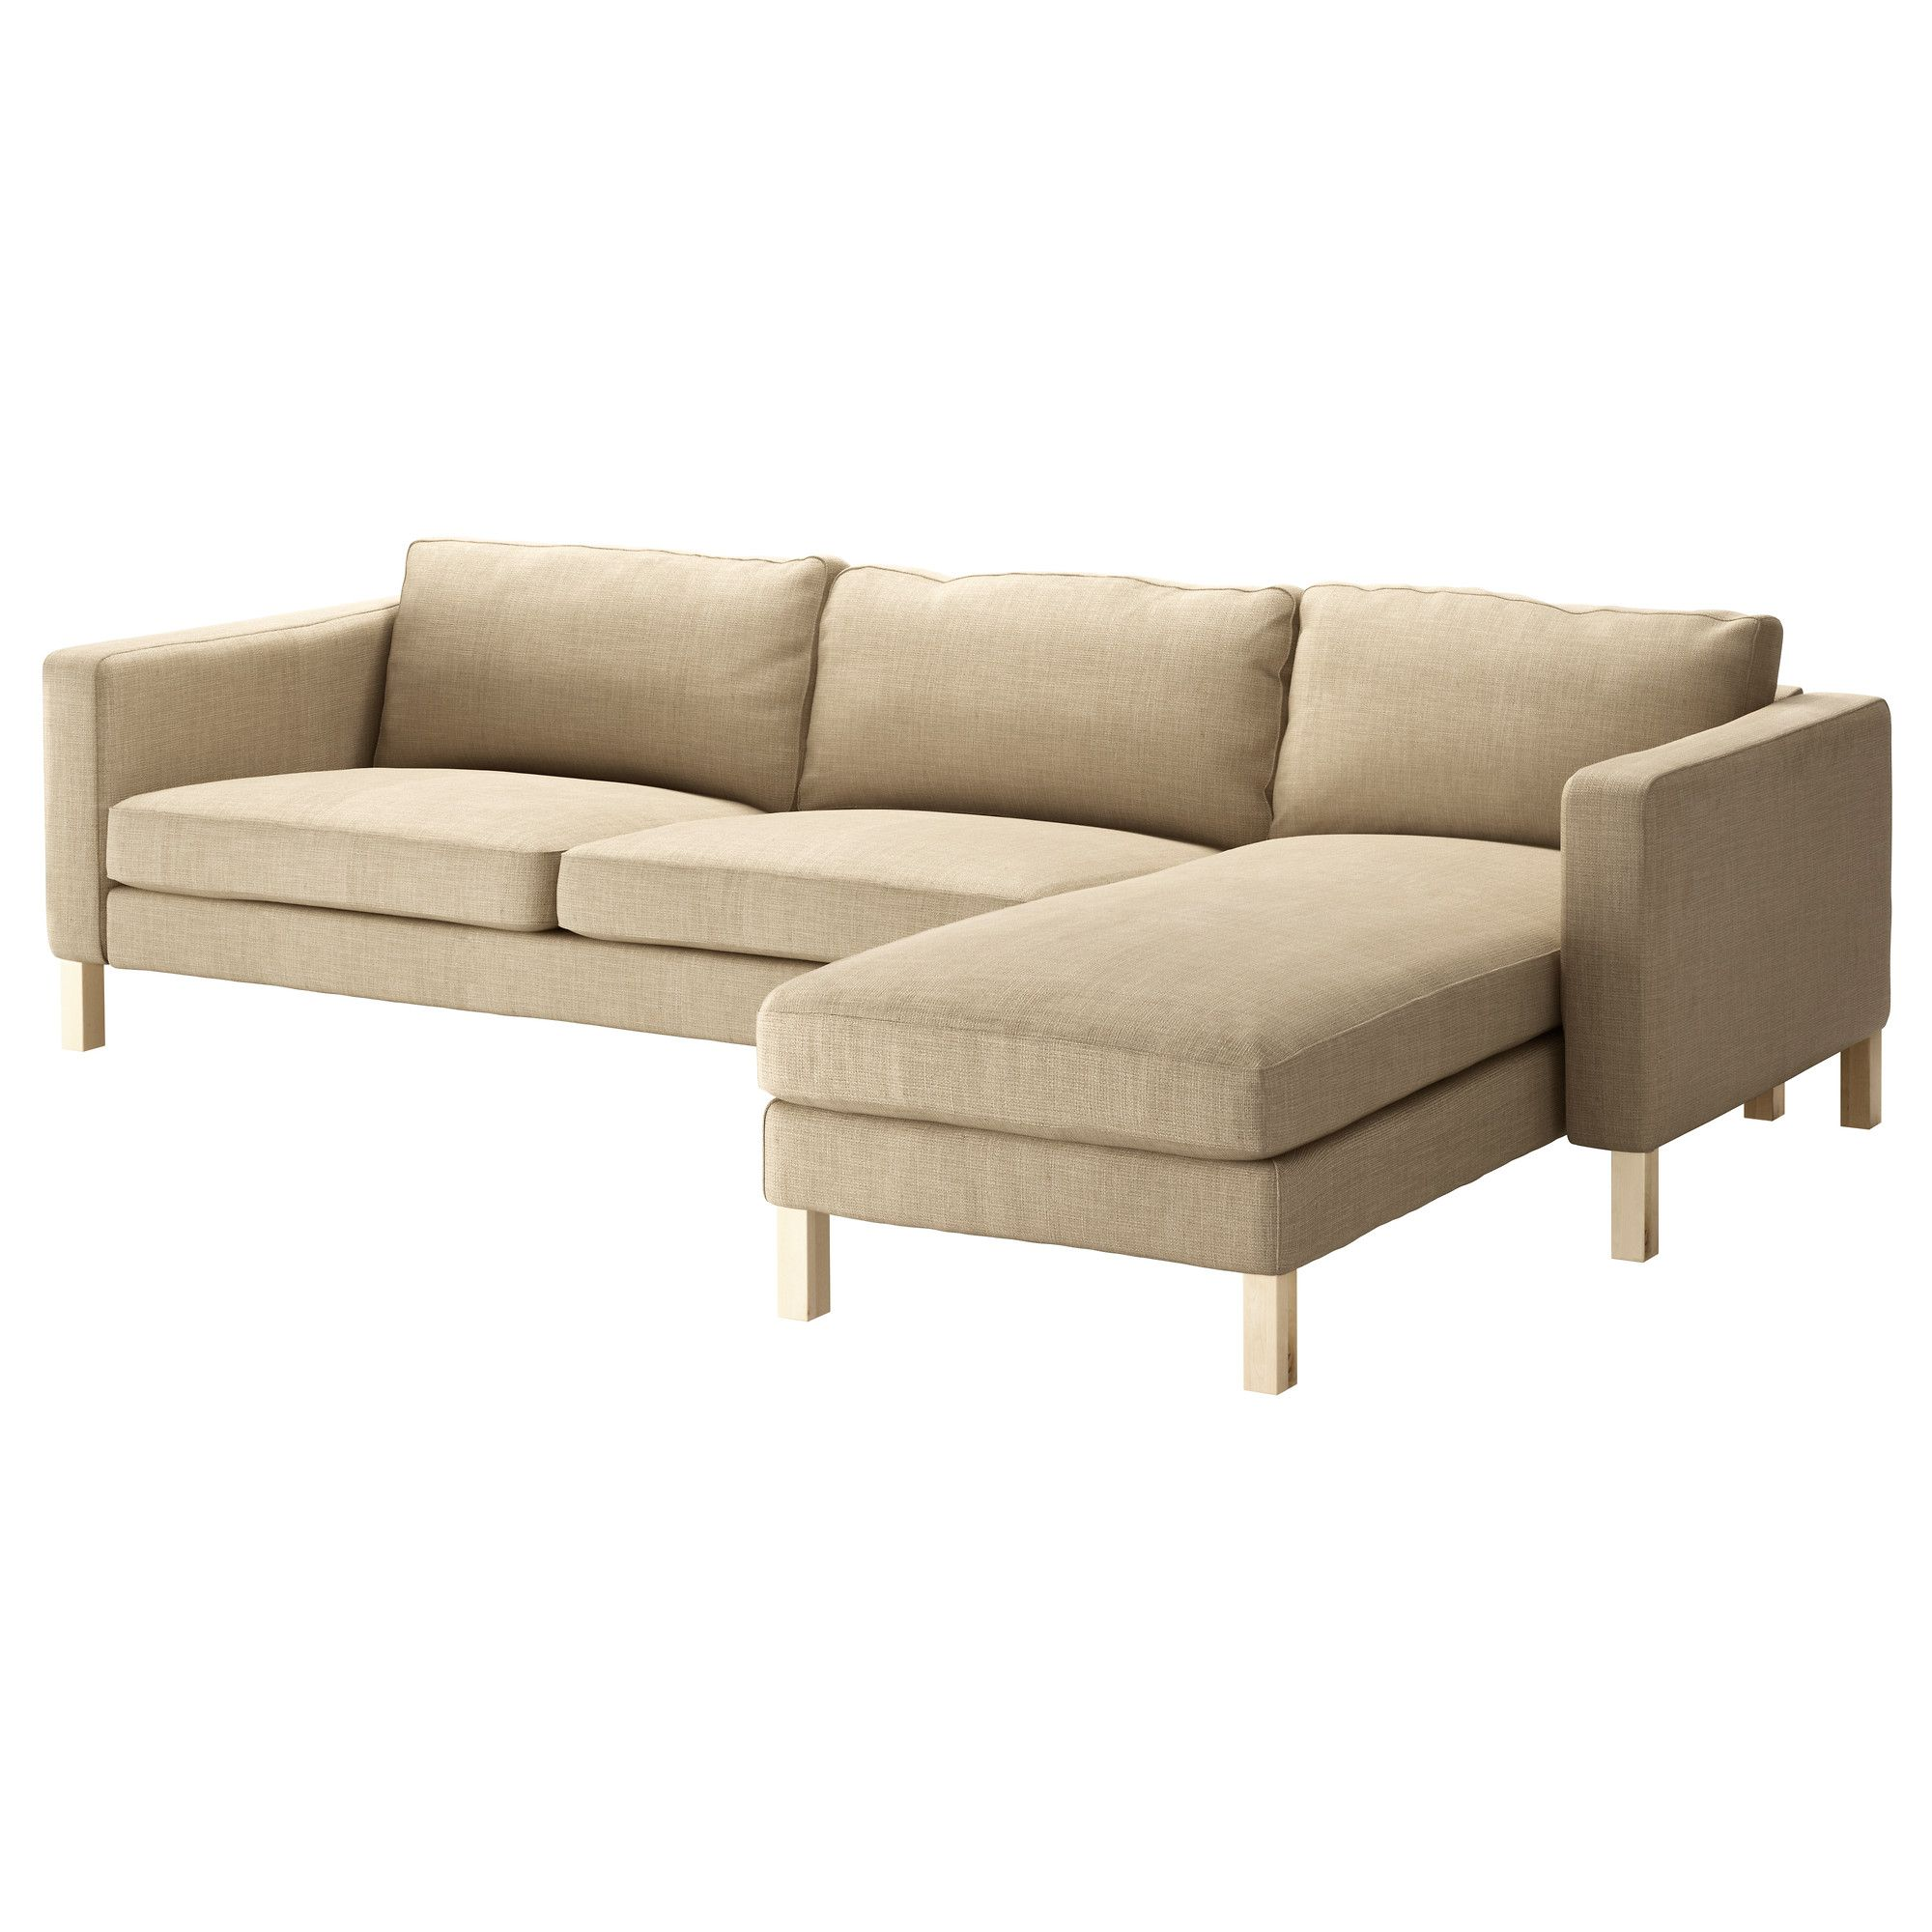 KARLSTAD Sofa and chaise lounge - Lindö beige - IKEA $998.00 | condo ...